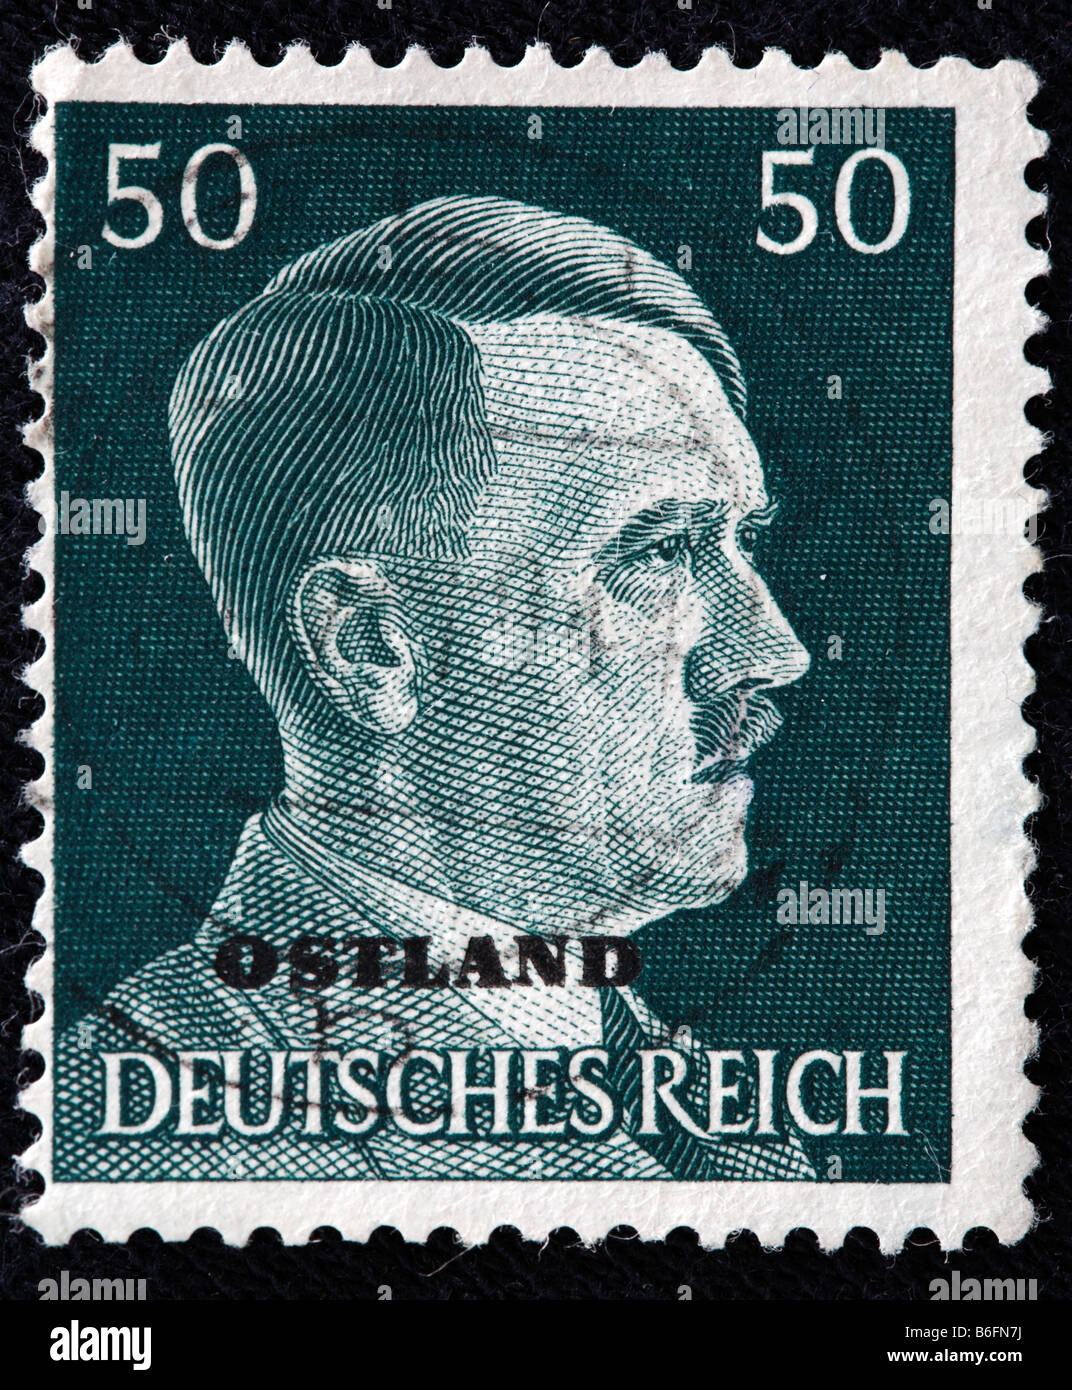 adolf hitler chancellor of germany in Adolf hitler was born on 20 april 1889 in braunau am inn, a town in austria-hungary  only partially free during hitler's term as chancellor of germany.